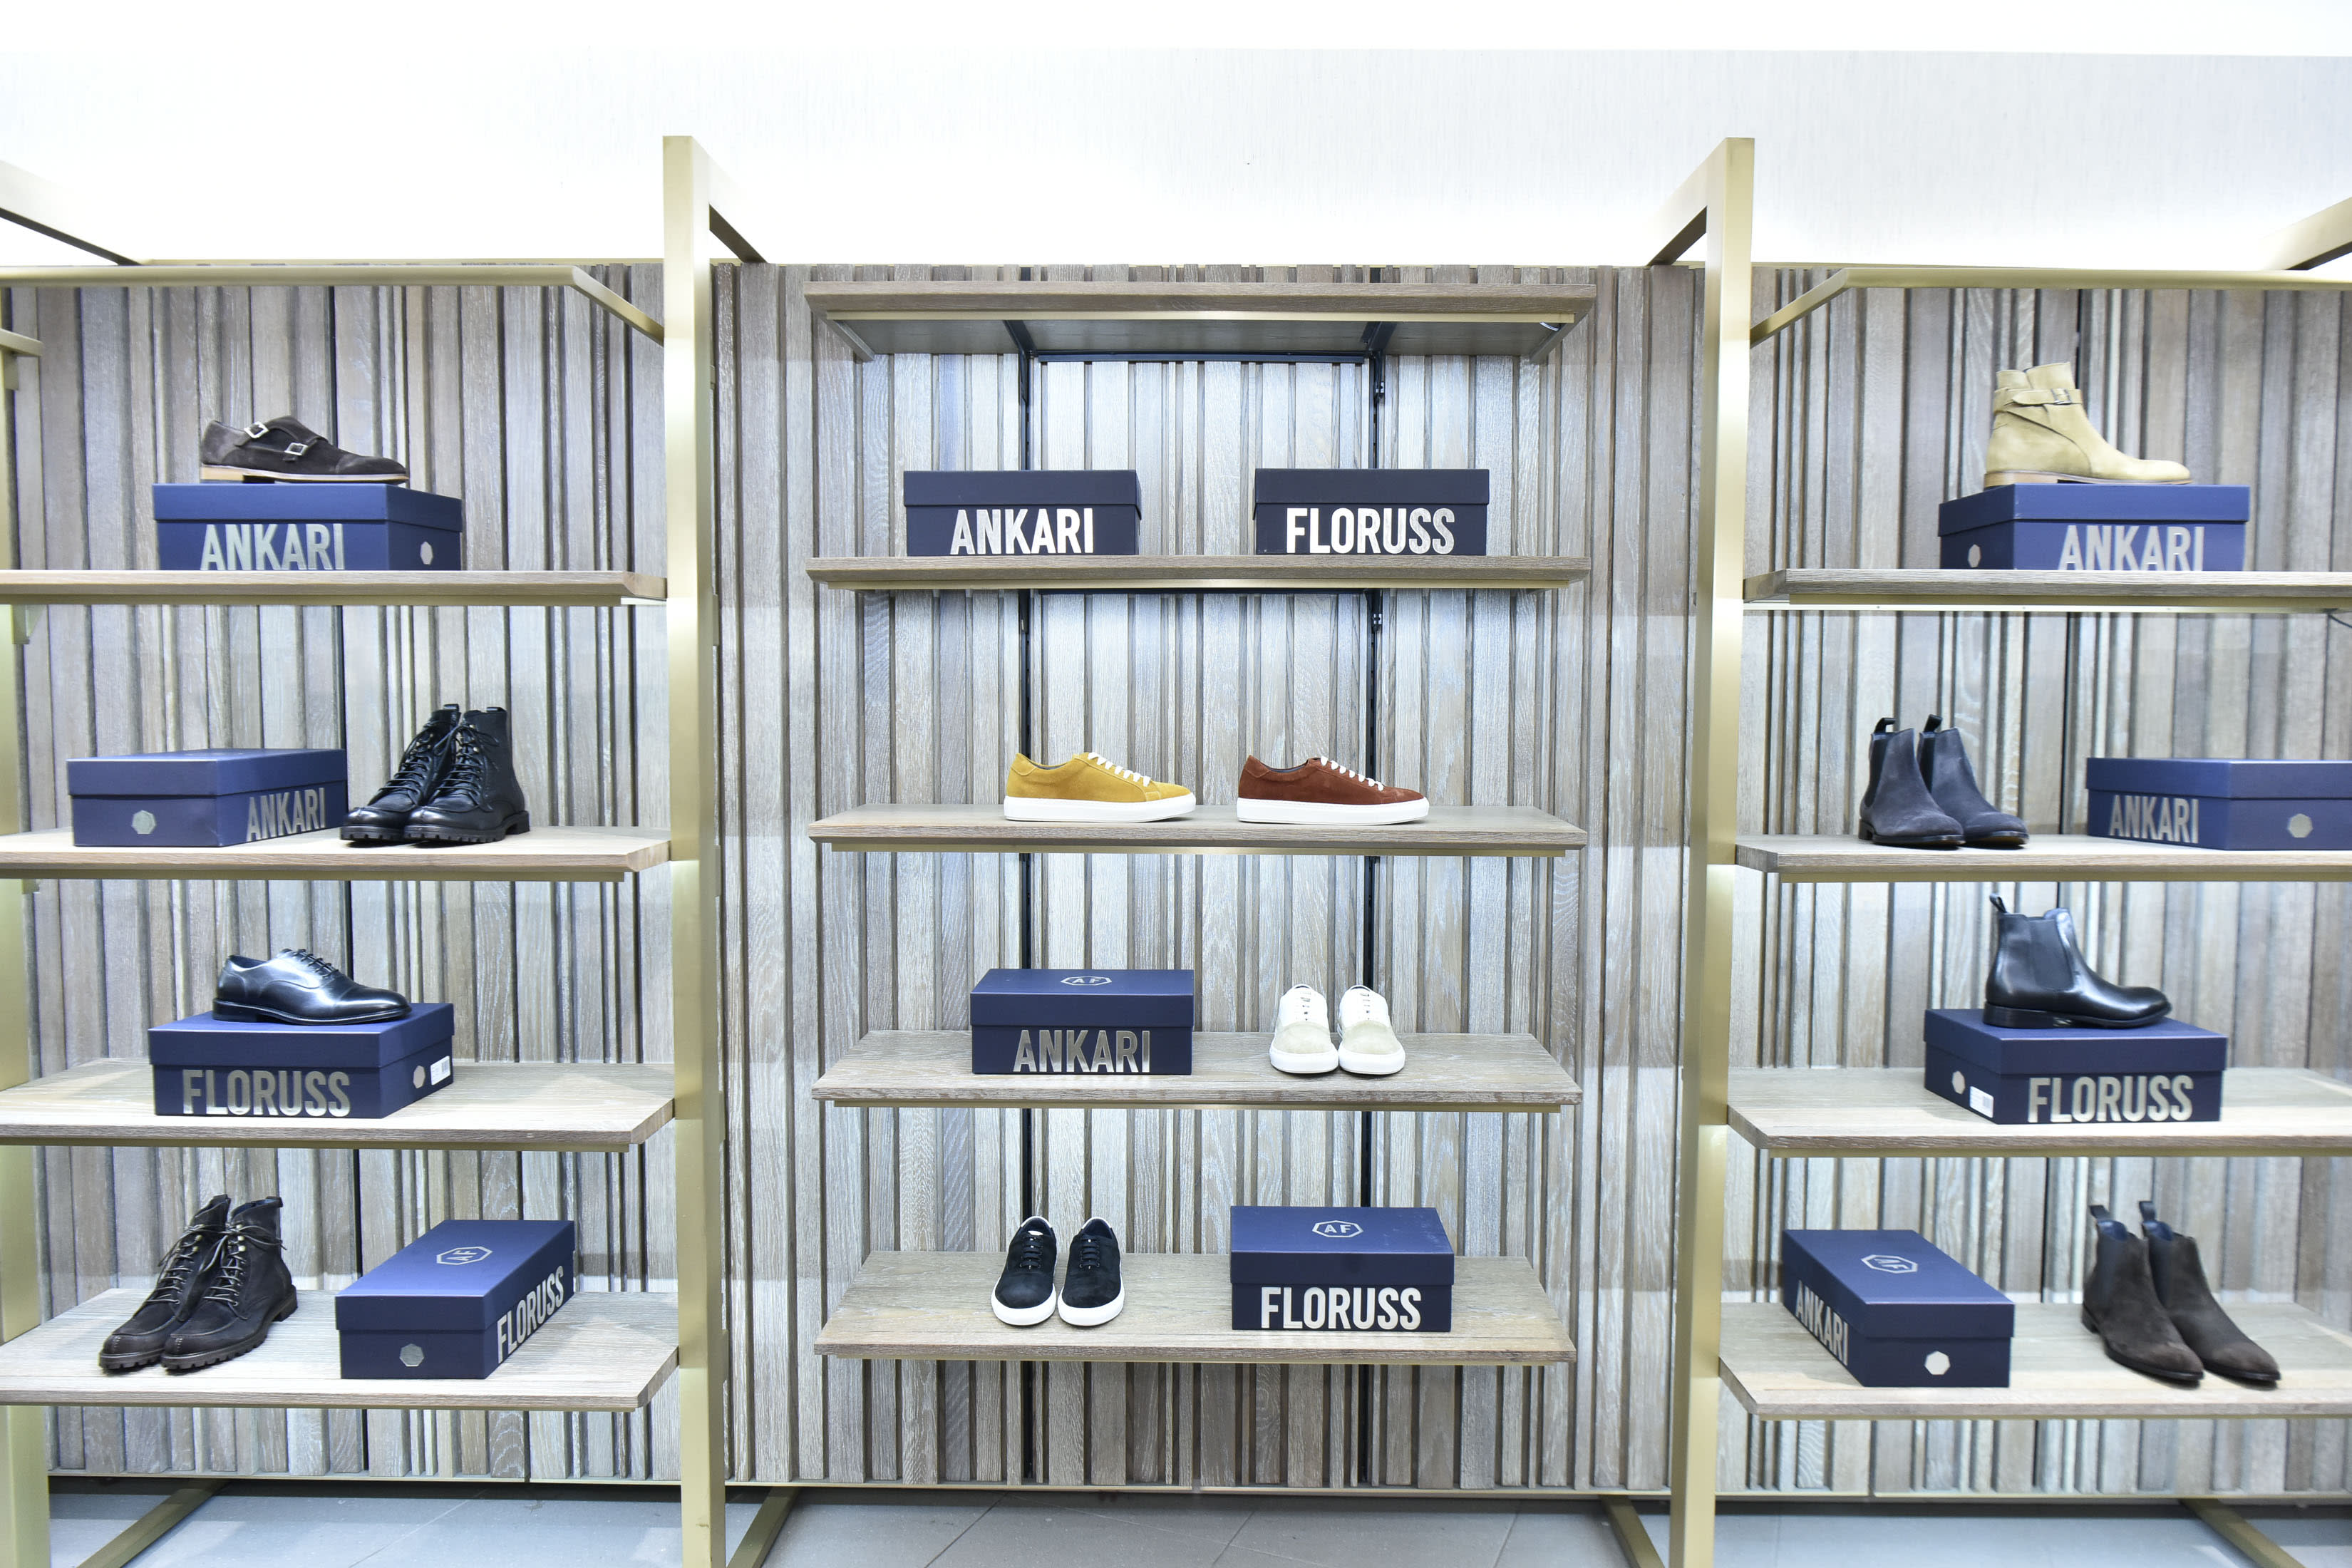 Nordstrom's new NYC store will drive $700 million in sales